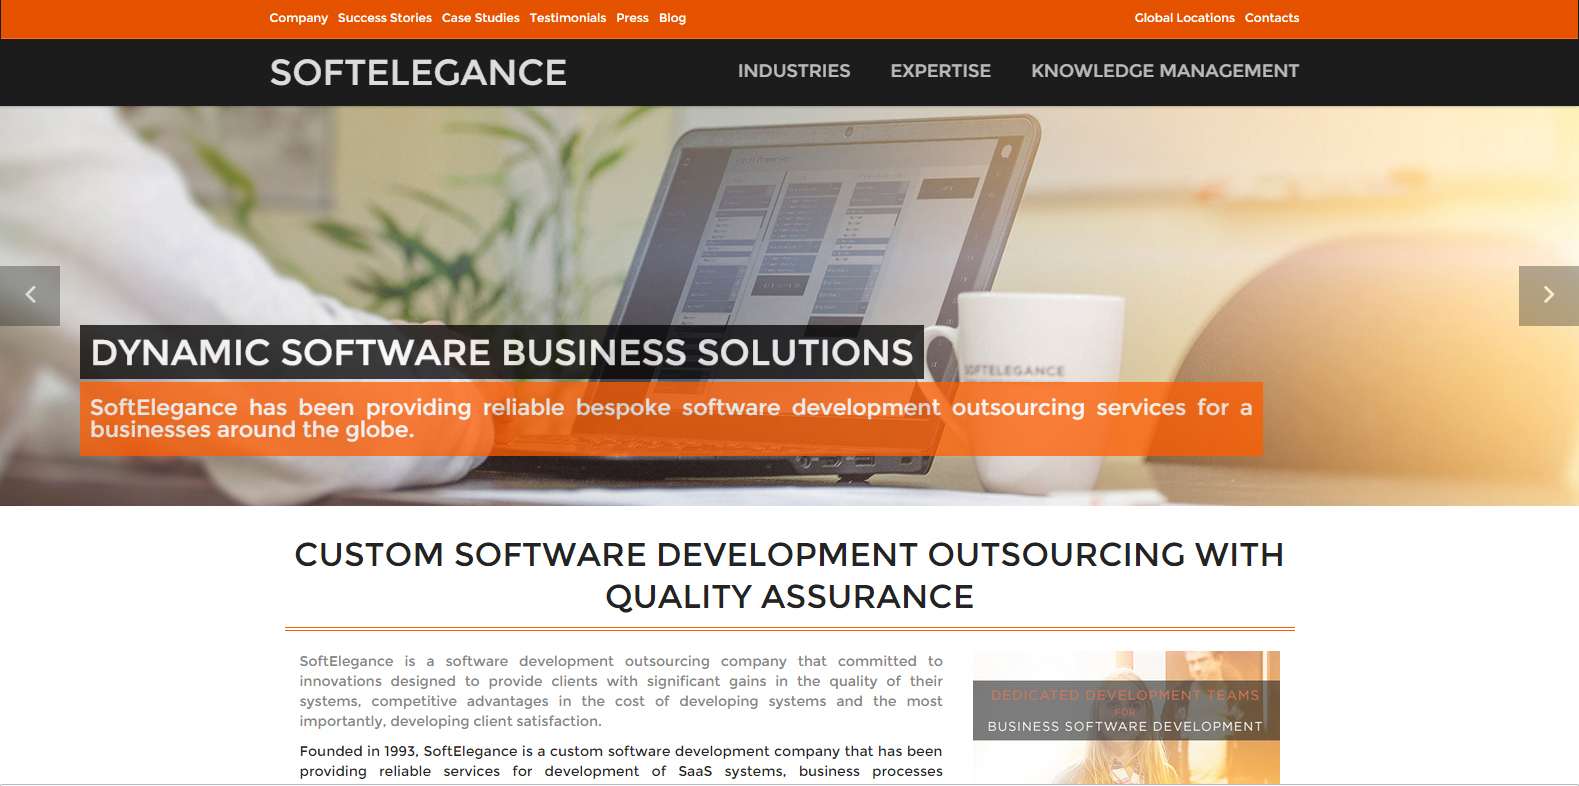 custom software development outsourcing with quality assurance